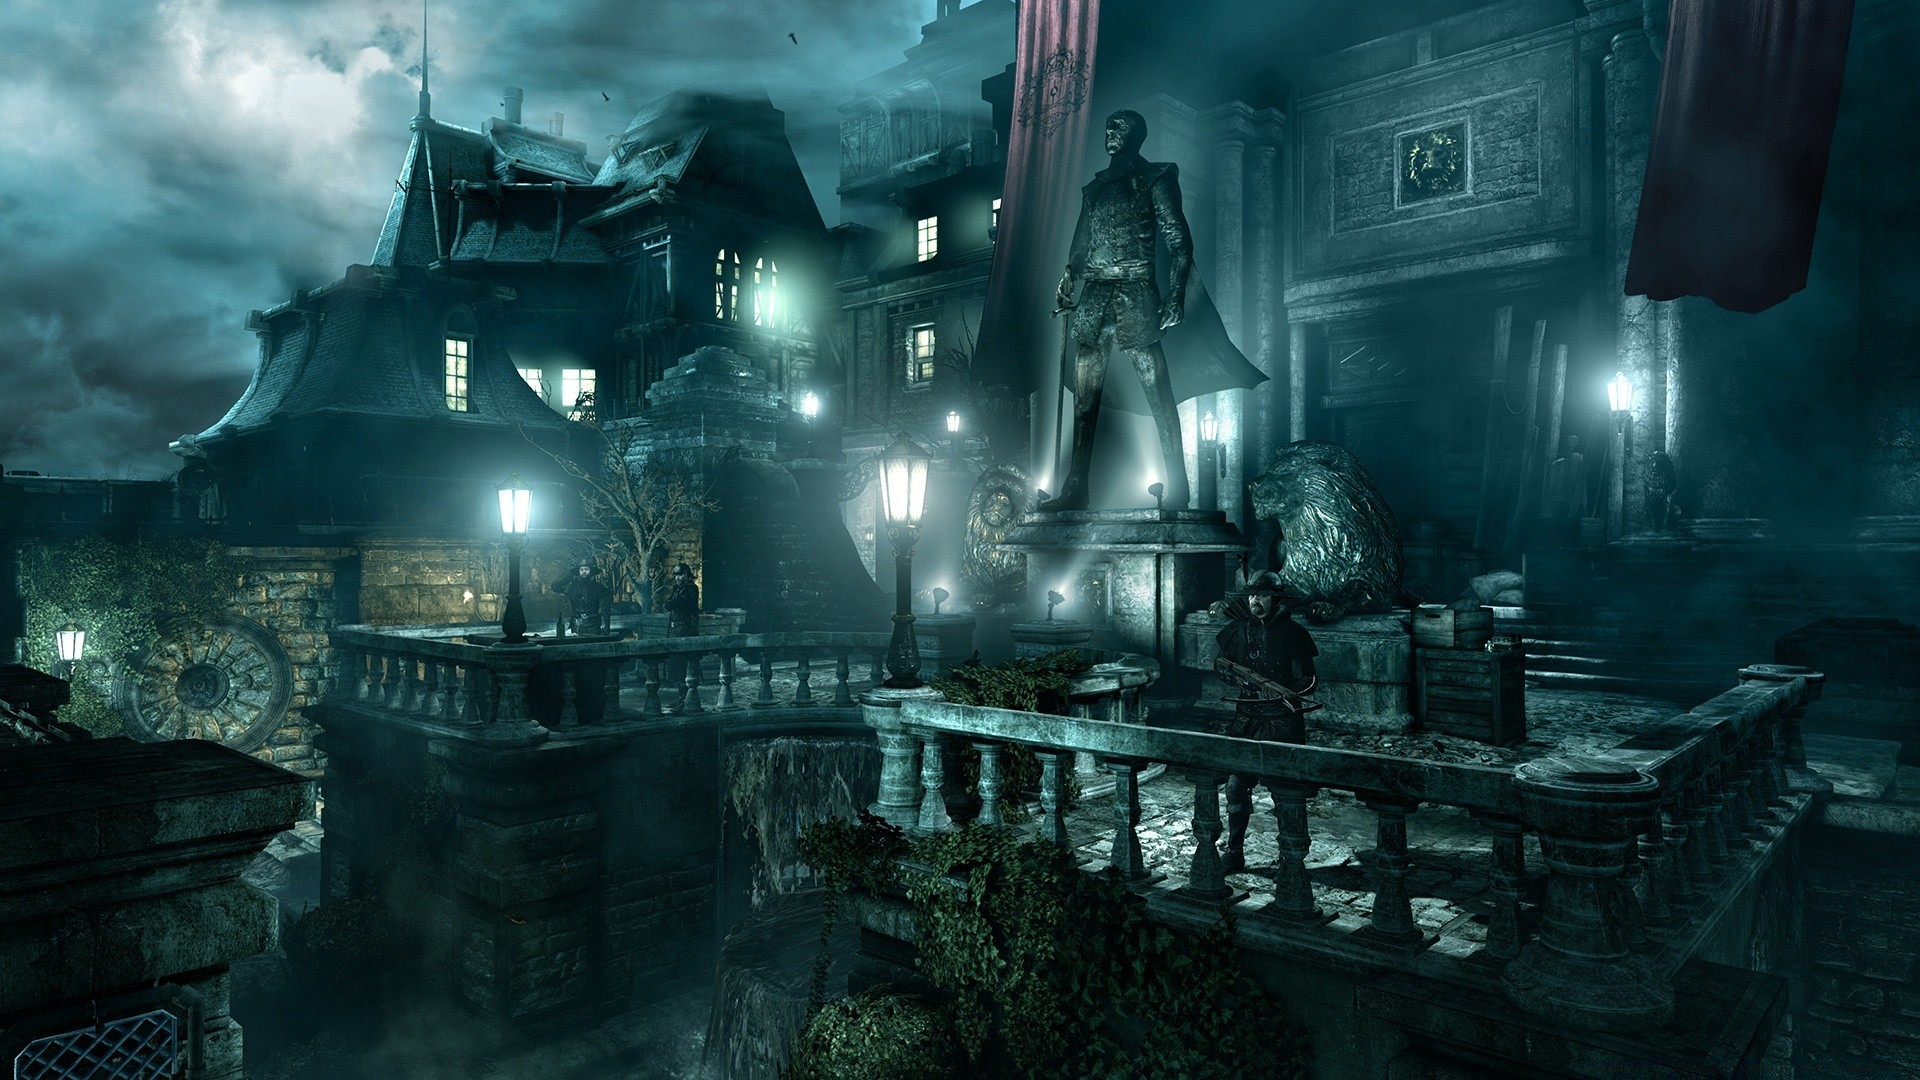 Thief 2014 Screenshot - Android wallpapers